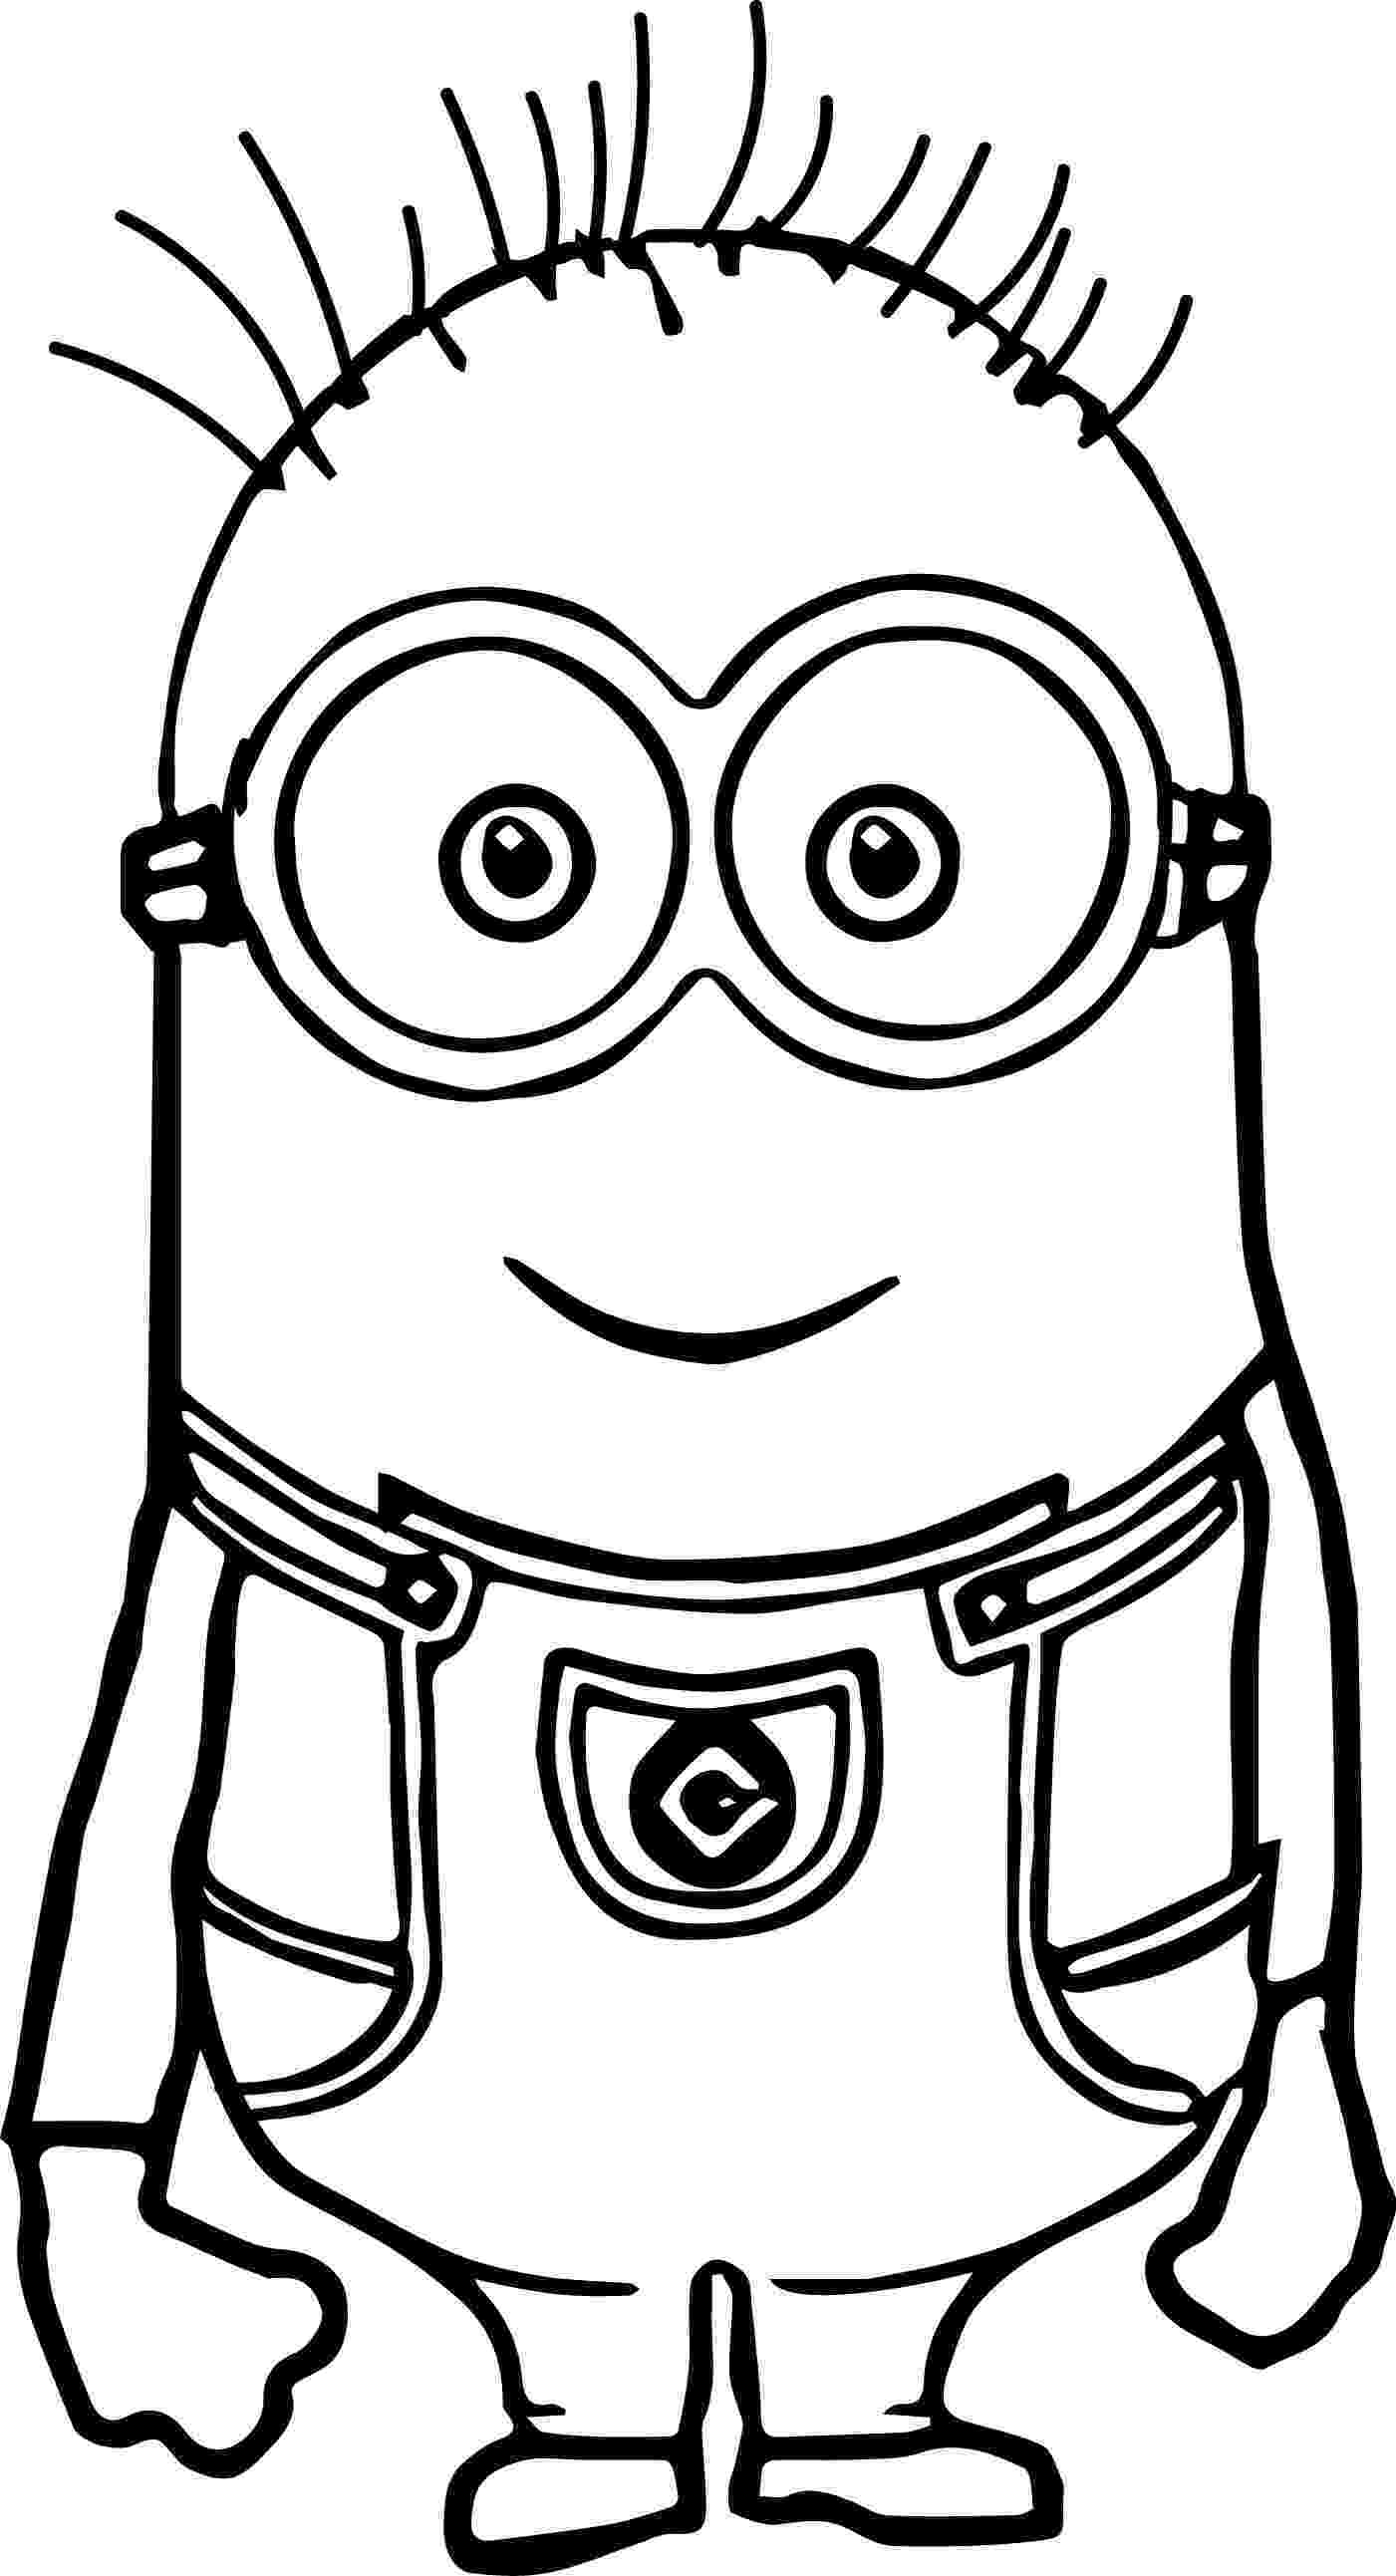 coloring book pages minions minion coloring pages free download on clipartmag book pages minions coloring